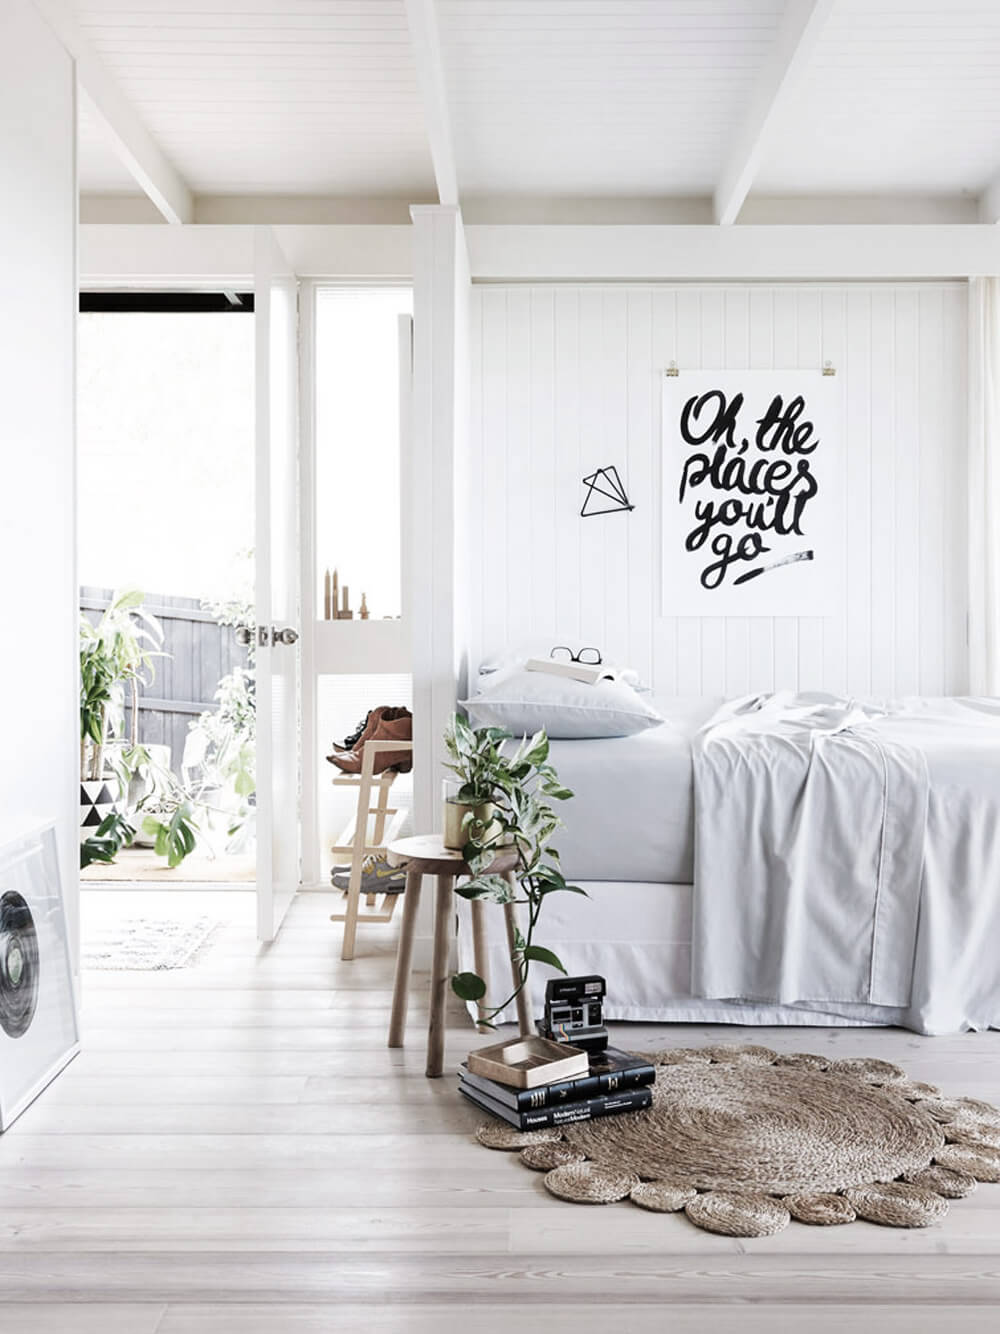 46 Smart Room Divider Ideas For Tiny Spaces | Real Estate Blog ...